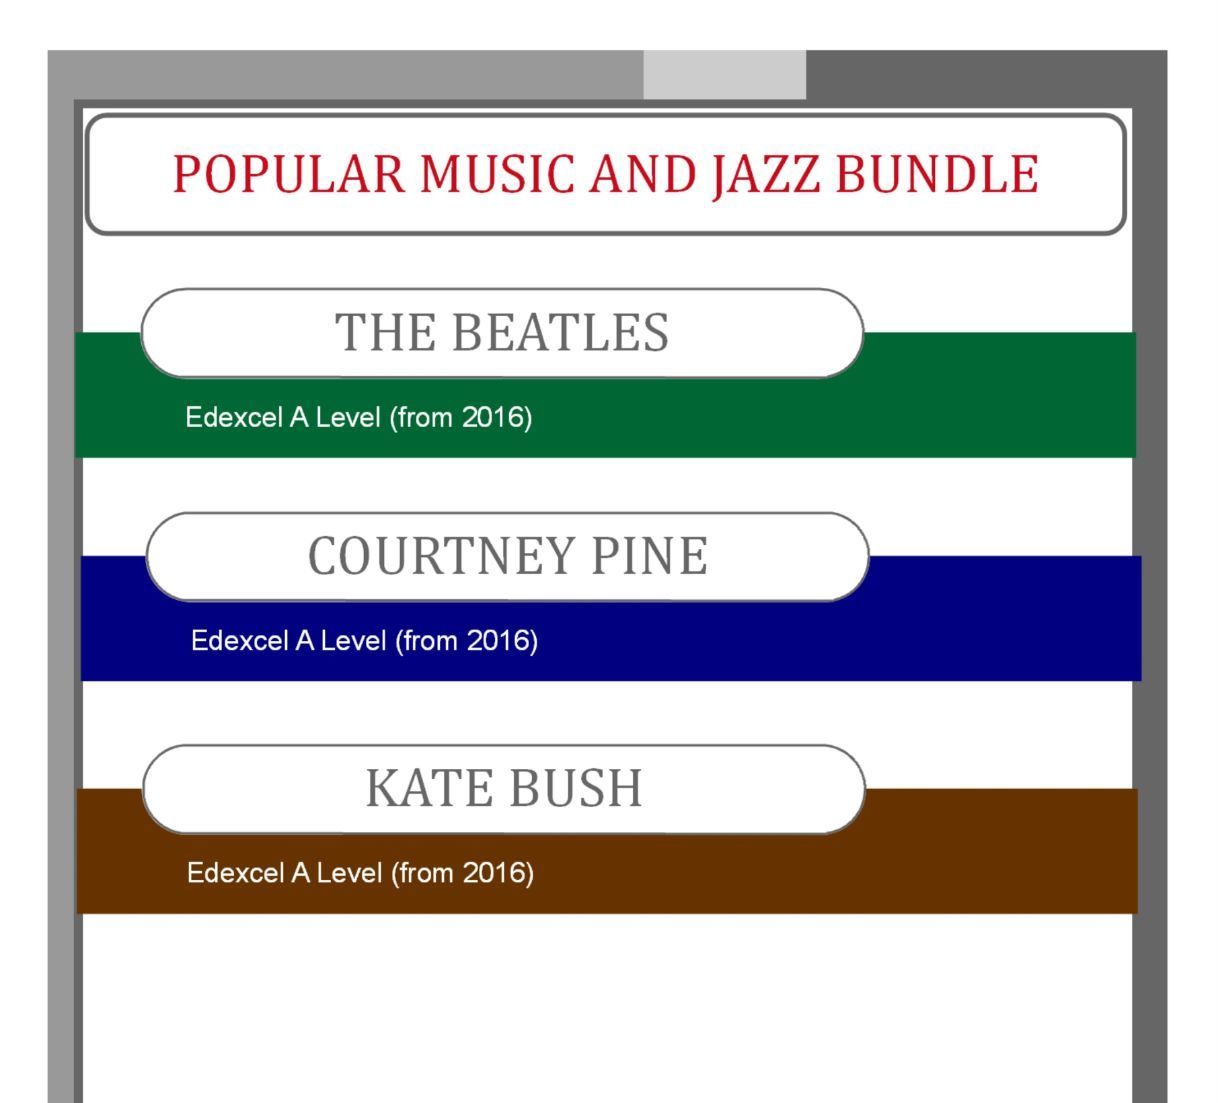 Area of Study Four: Pop Music and Jazz Bundle for Edexcel Music A Level (from 2016)